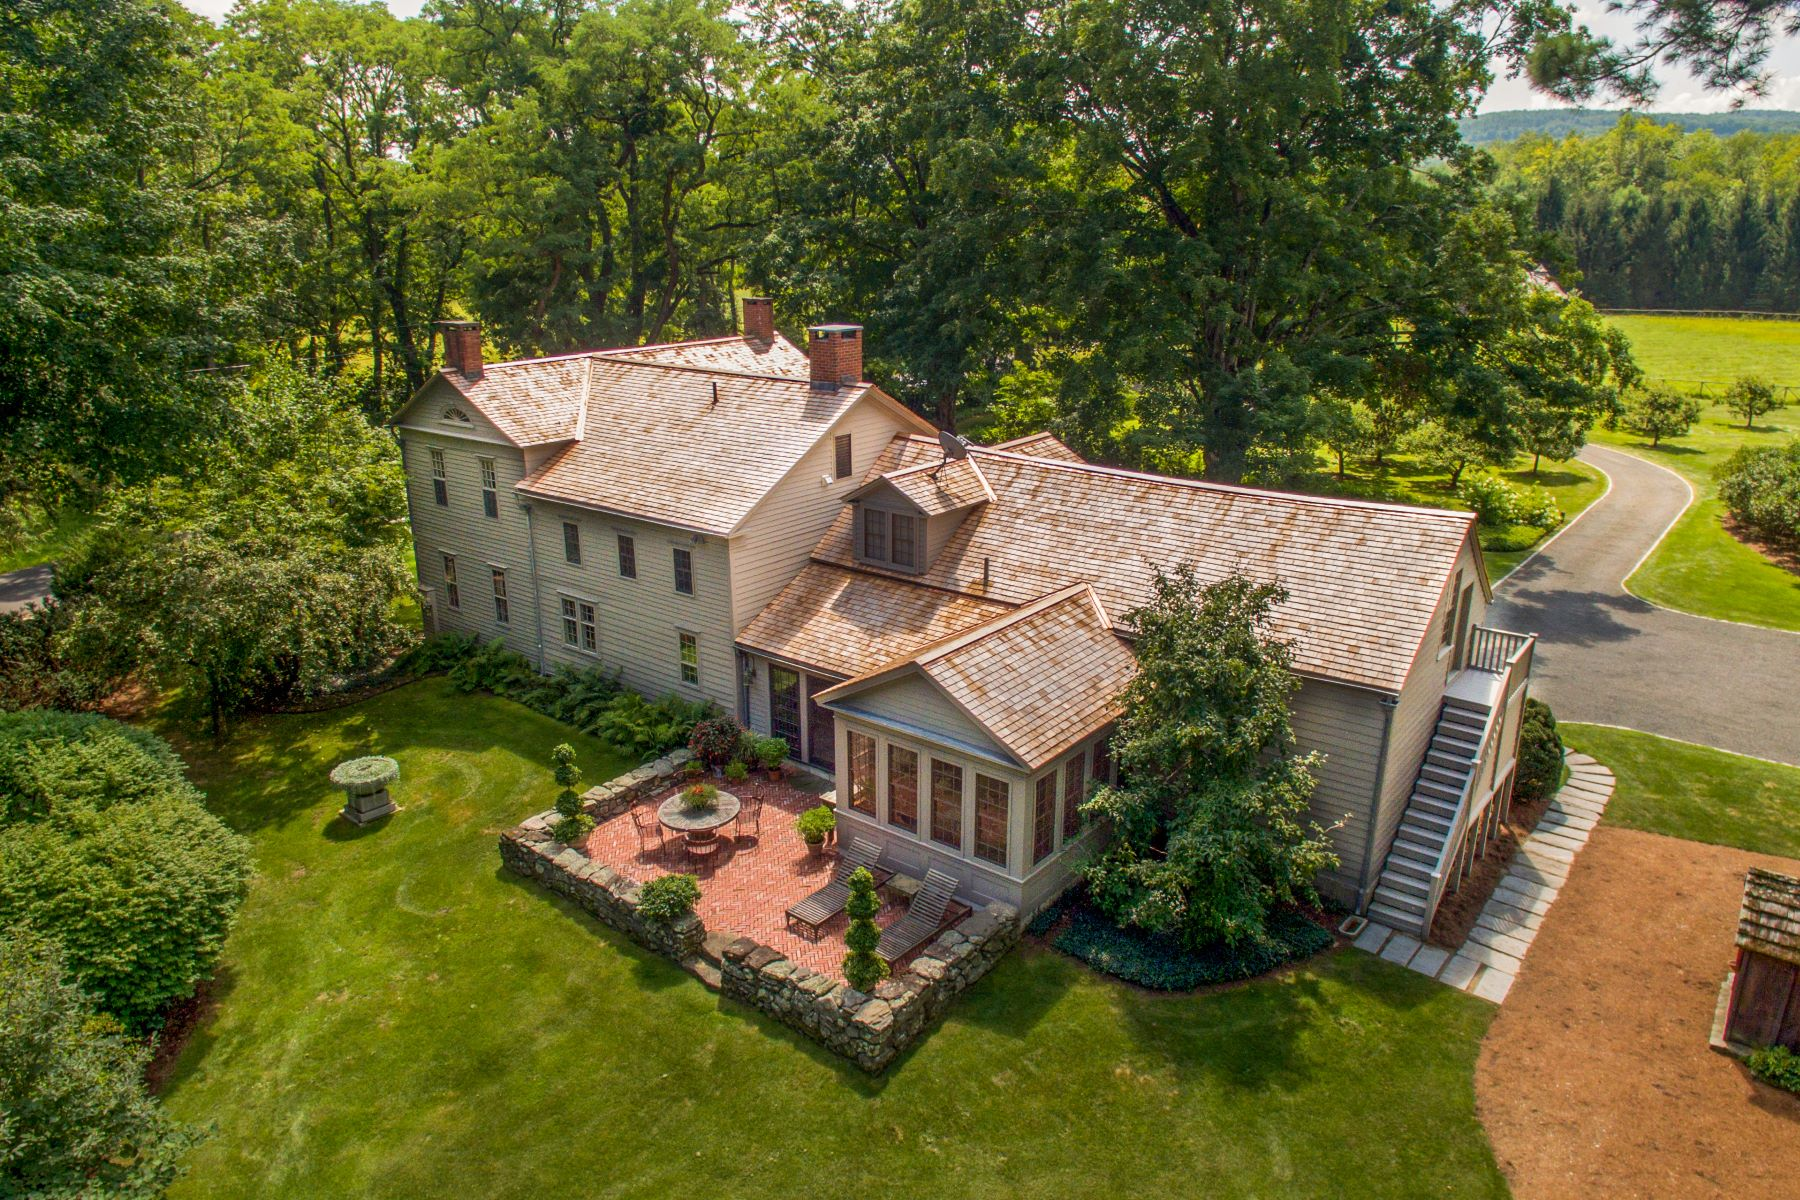 Single Family Home for Sale at Bull Hill Farm - Restored 1780's Farmhouse & Converted Barn Country Estate 514 Rannapo Rd Sheffield, Massachusetts 01257 United States